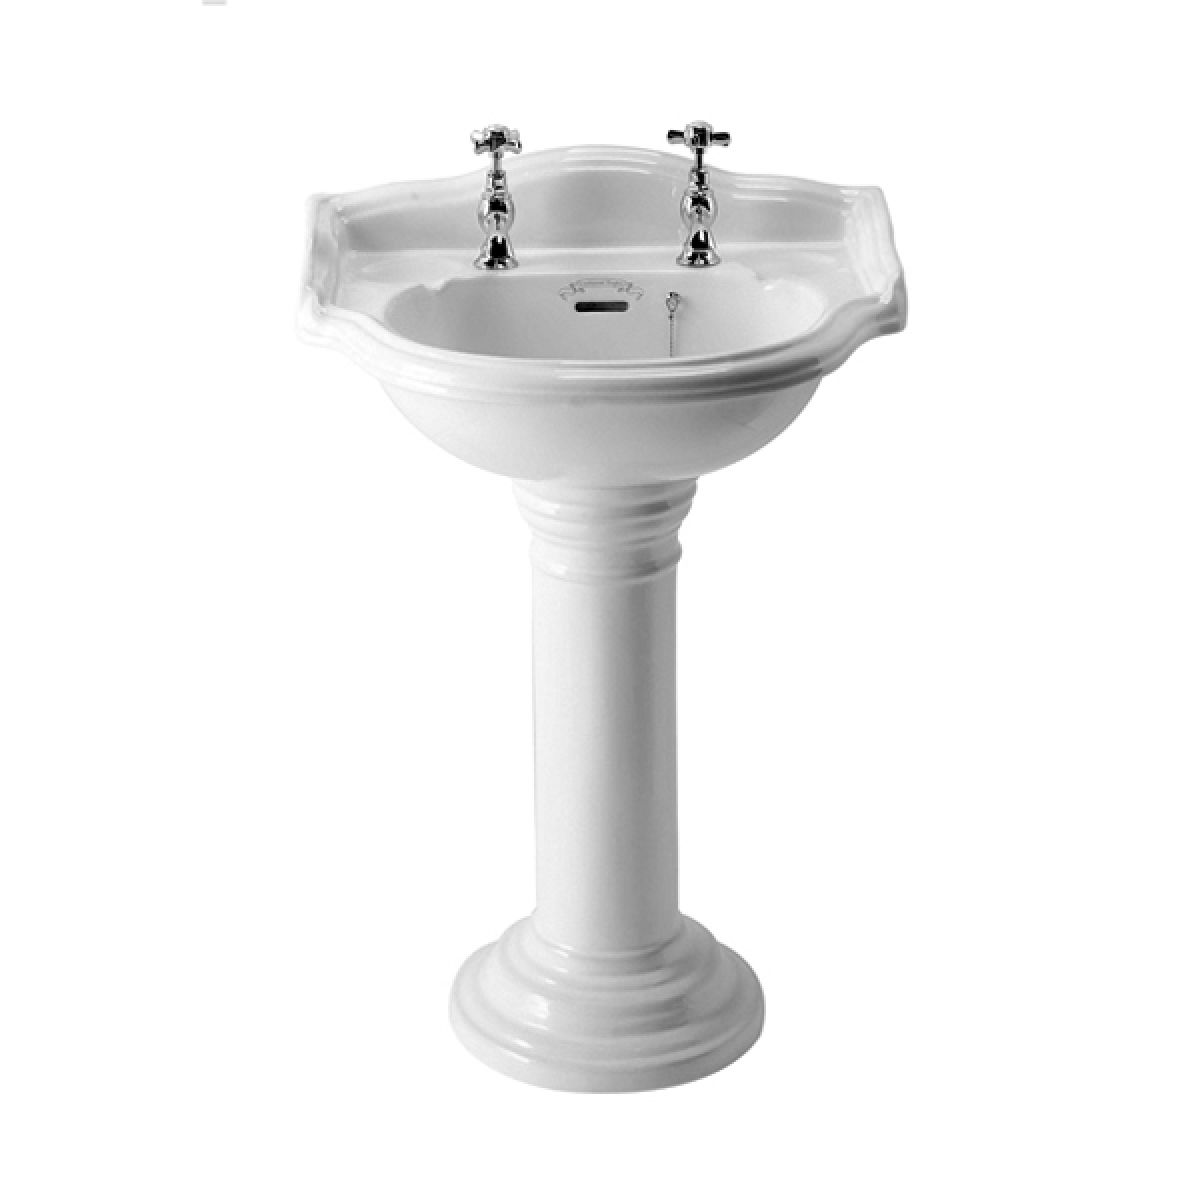 ... basin full pedestal home bathrooms basins and sinks traditional basins